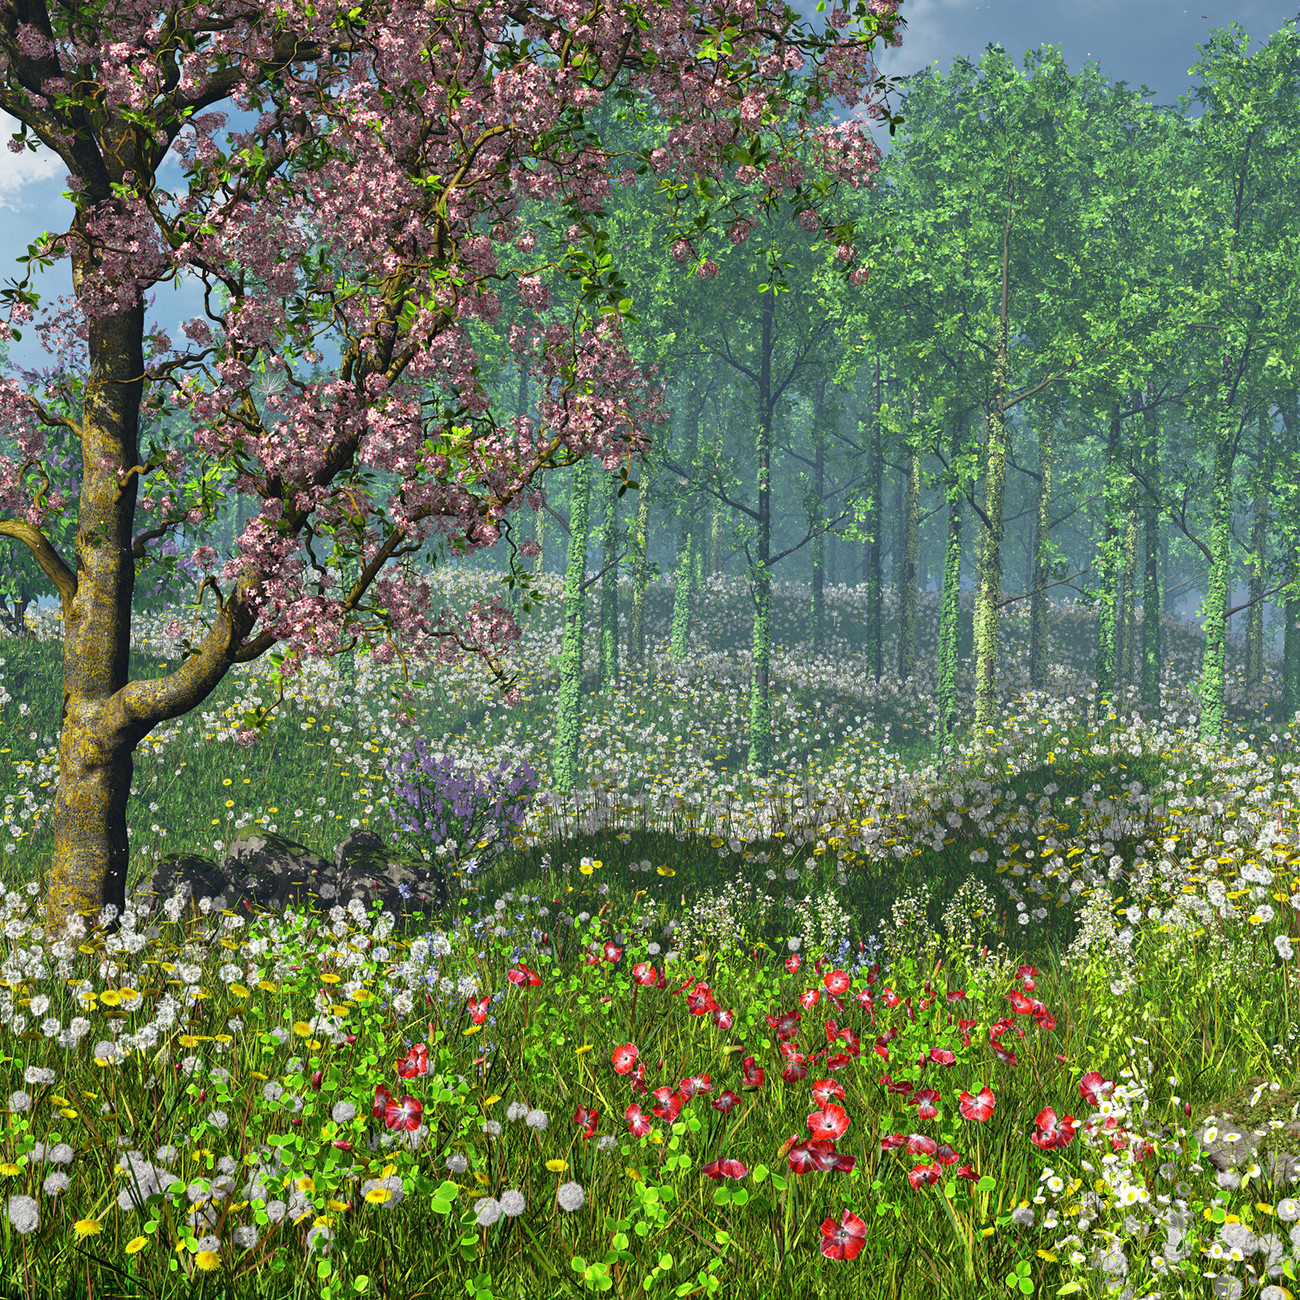 Instant Forest Ivy - Instant Meadow 3 Flowers